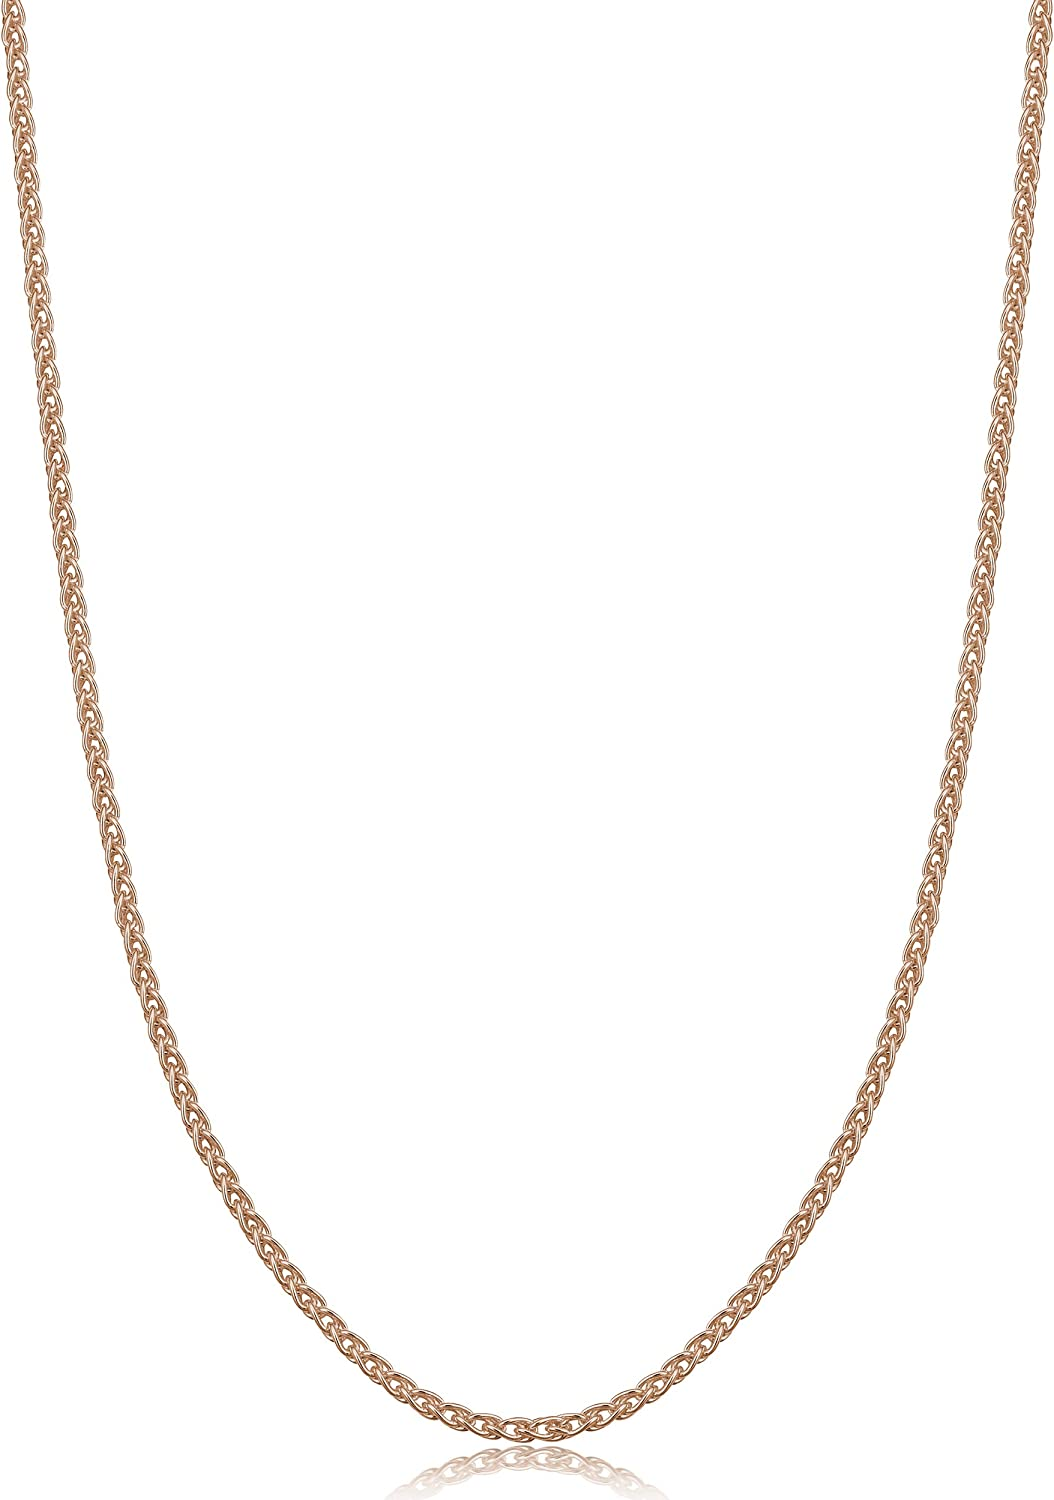 Kooljewelry Rose Gold Plated Sterling Silver Round Wheat Chain Necklace (1.5 mm)